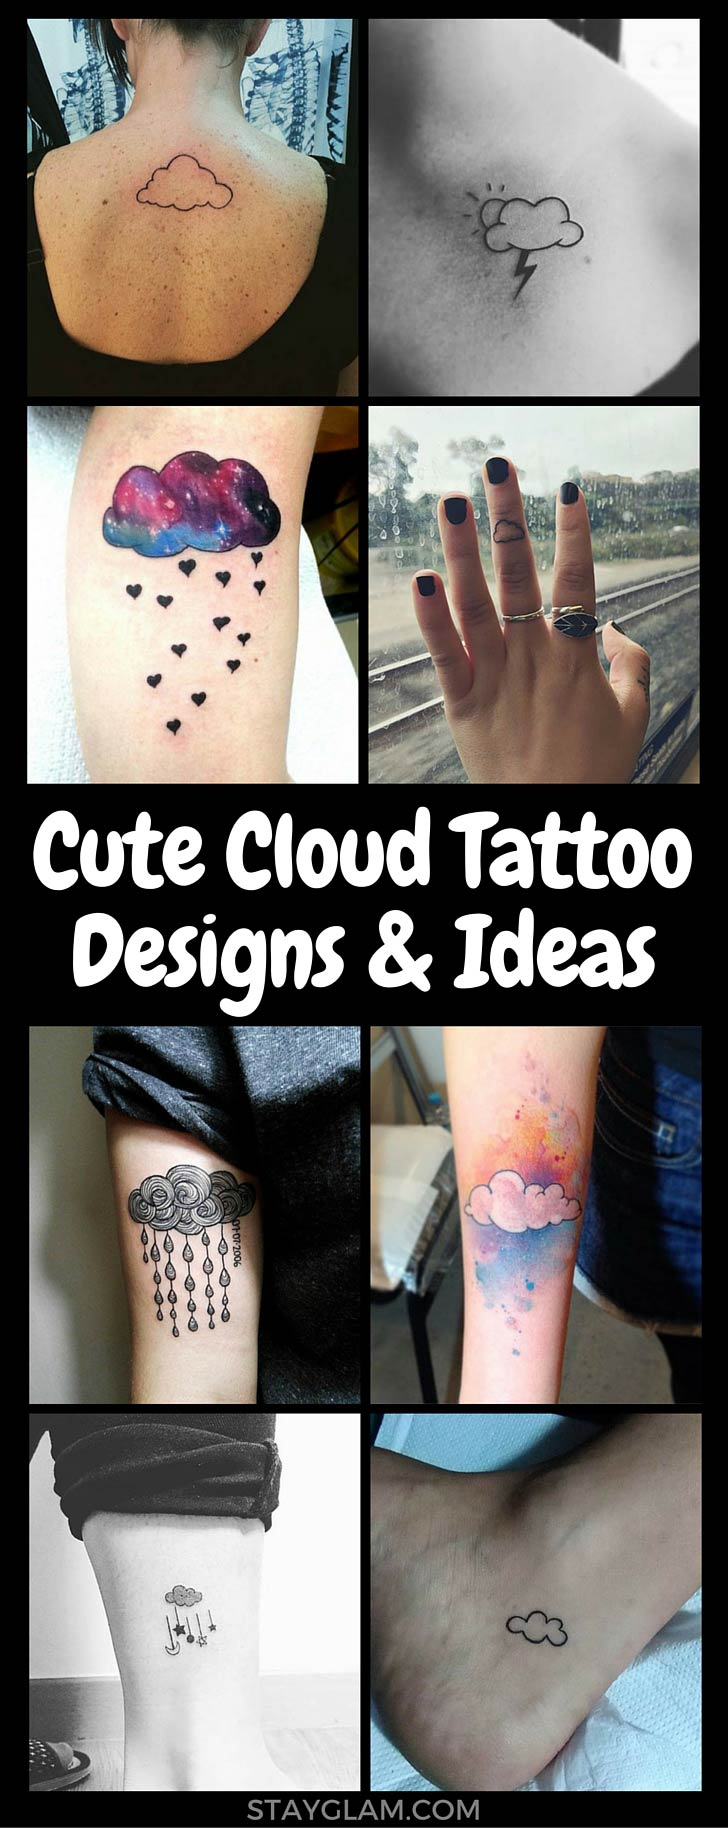 Cute Cloud Tattoo Designs and Ideas